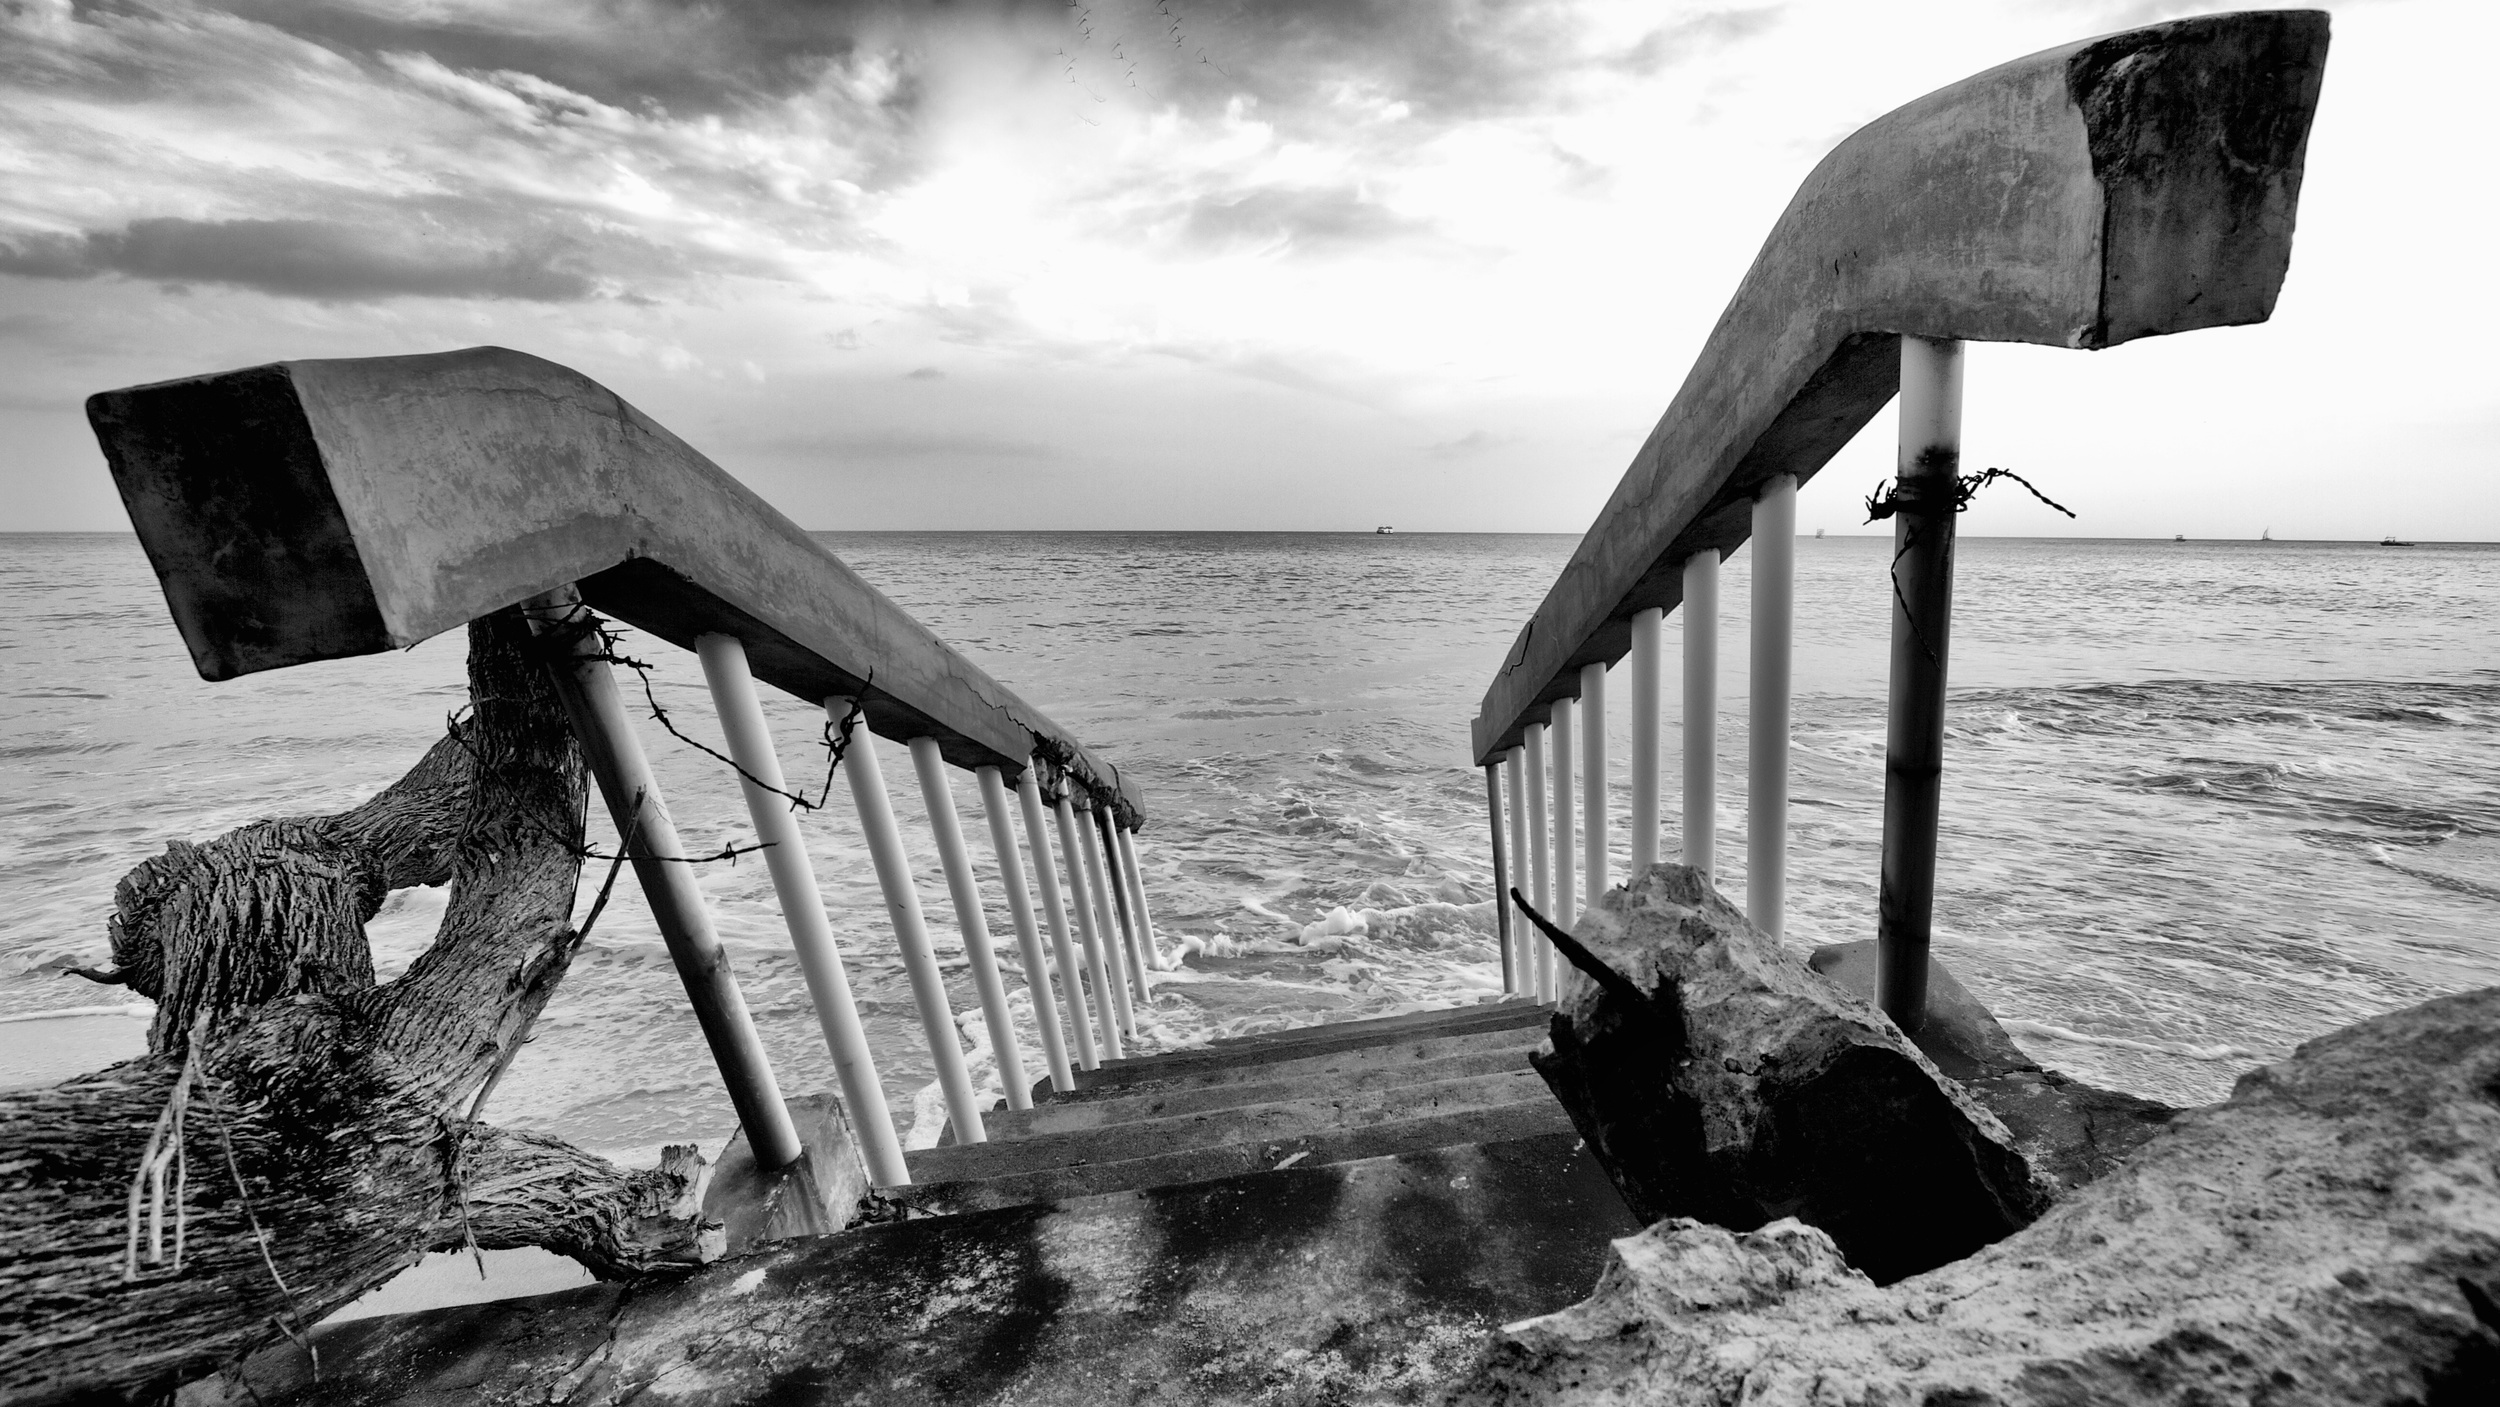 A lonely set of stairs leads into the water.  Canon EOS 7D EF-S 10-22mm at 10mm f/7.1 1/160 ISO 100